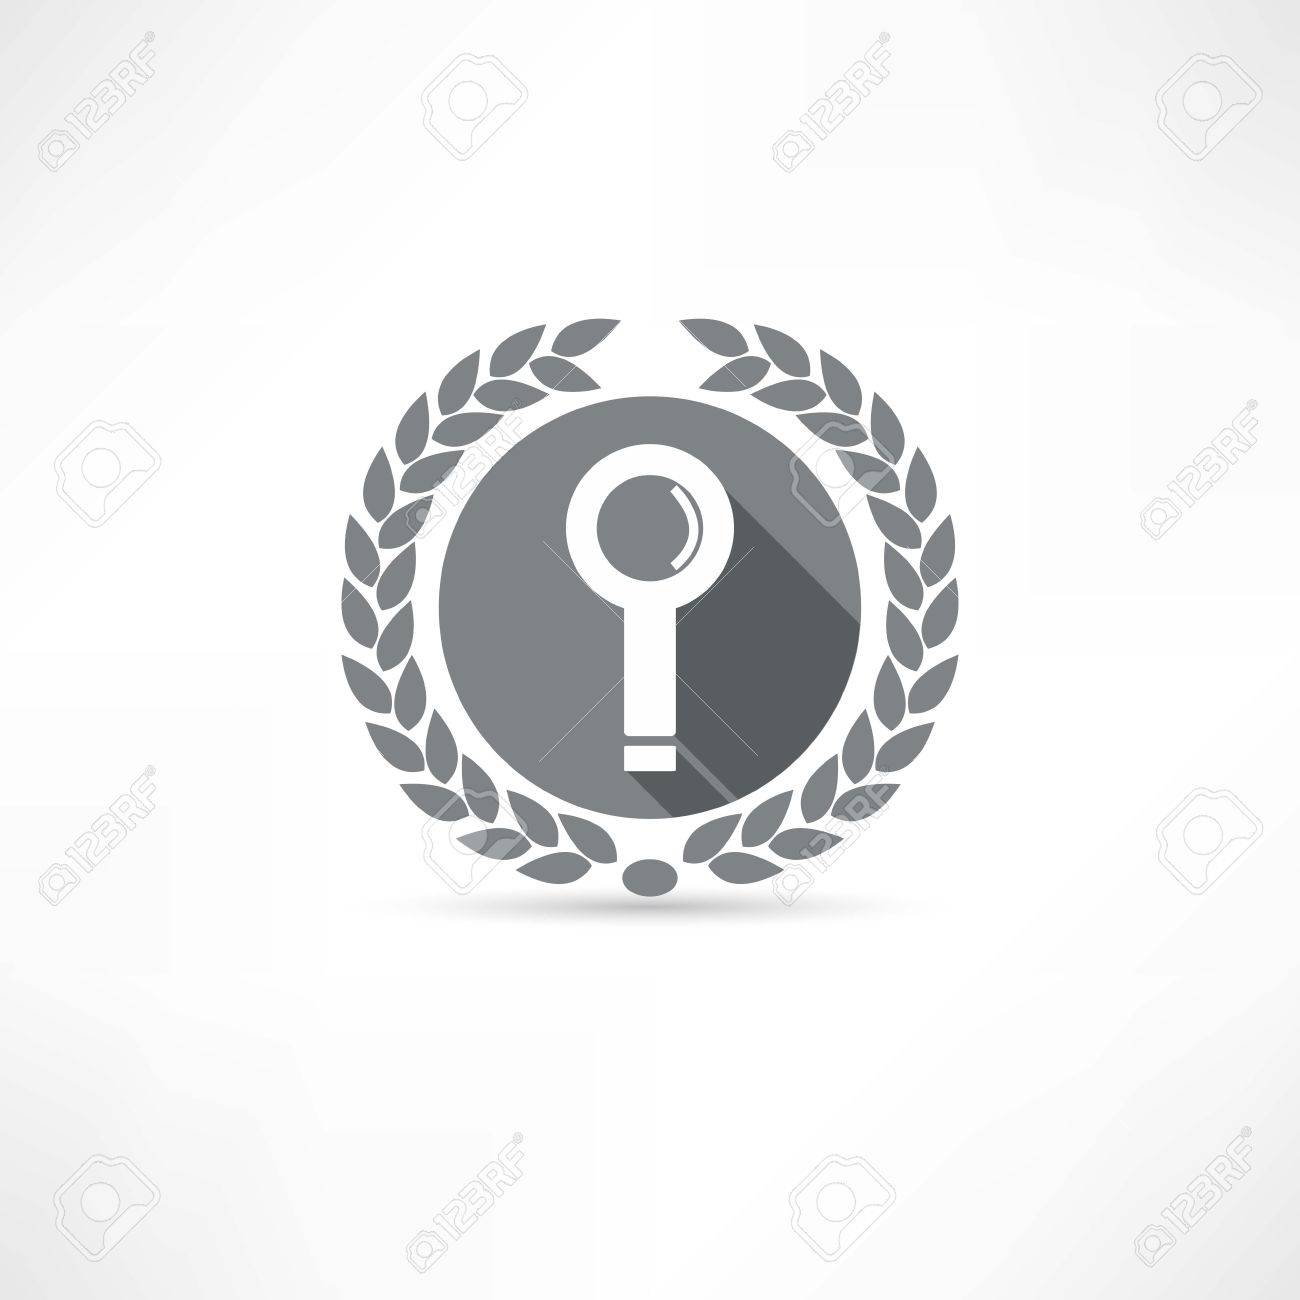 search icon Stock Vector - 23708704